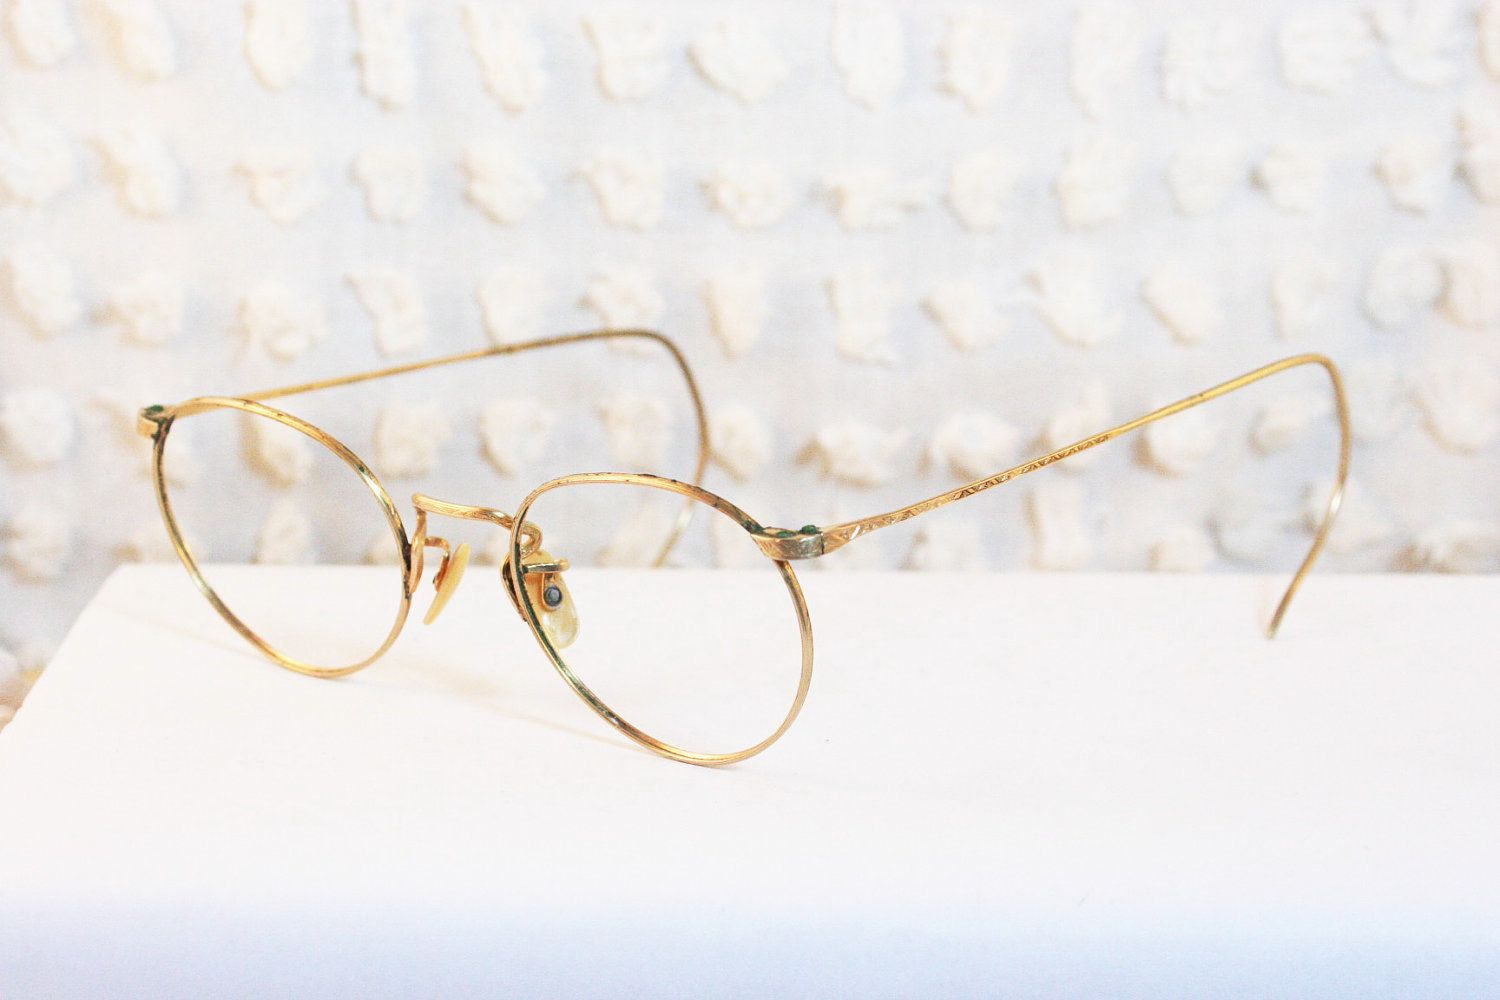 844b640686c6 40s Round Glasses 1940 s Wire Rim Eyeglasses Yellow Gold Fill Etched Frame  Wartime 44 20 American Optical.  54.00